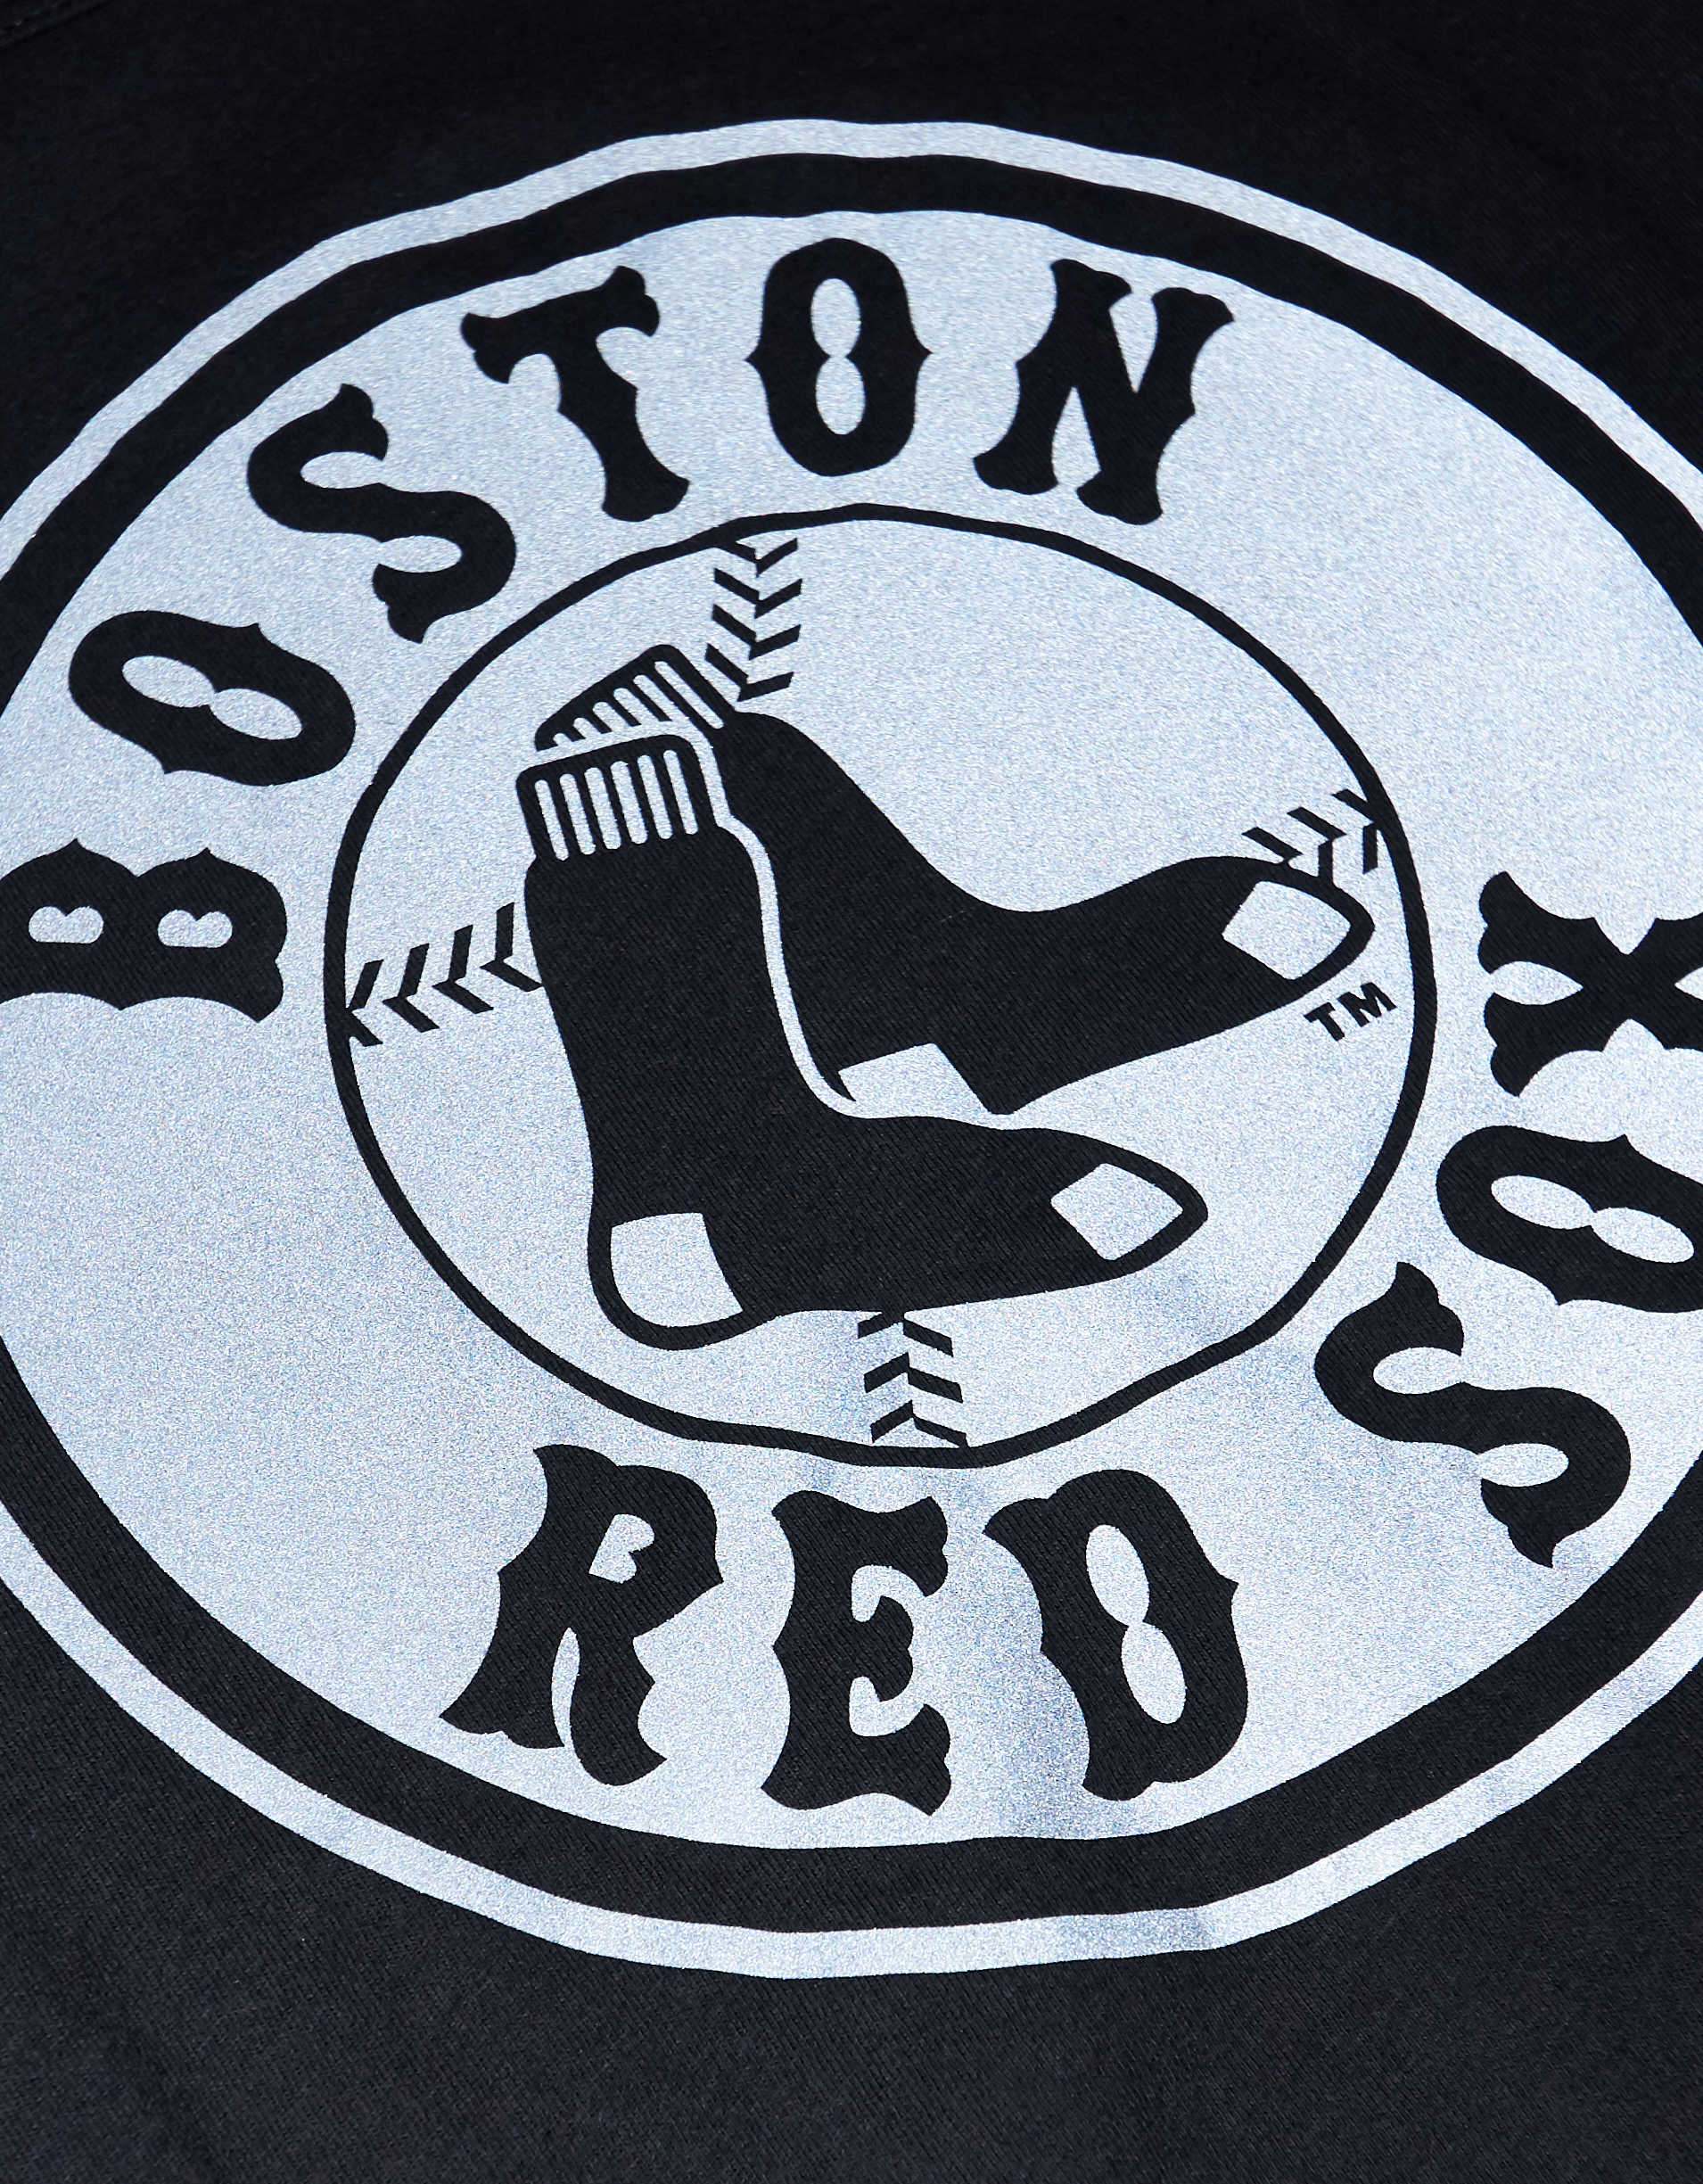 Tailgate Men's Boston Red Sox Reflective Graphic T Shirt by American Eagle Outfitters